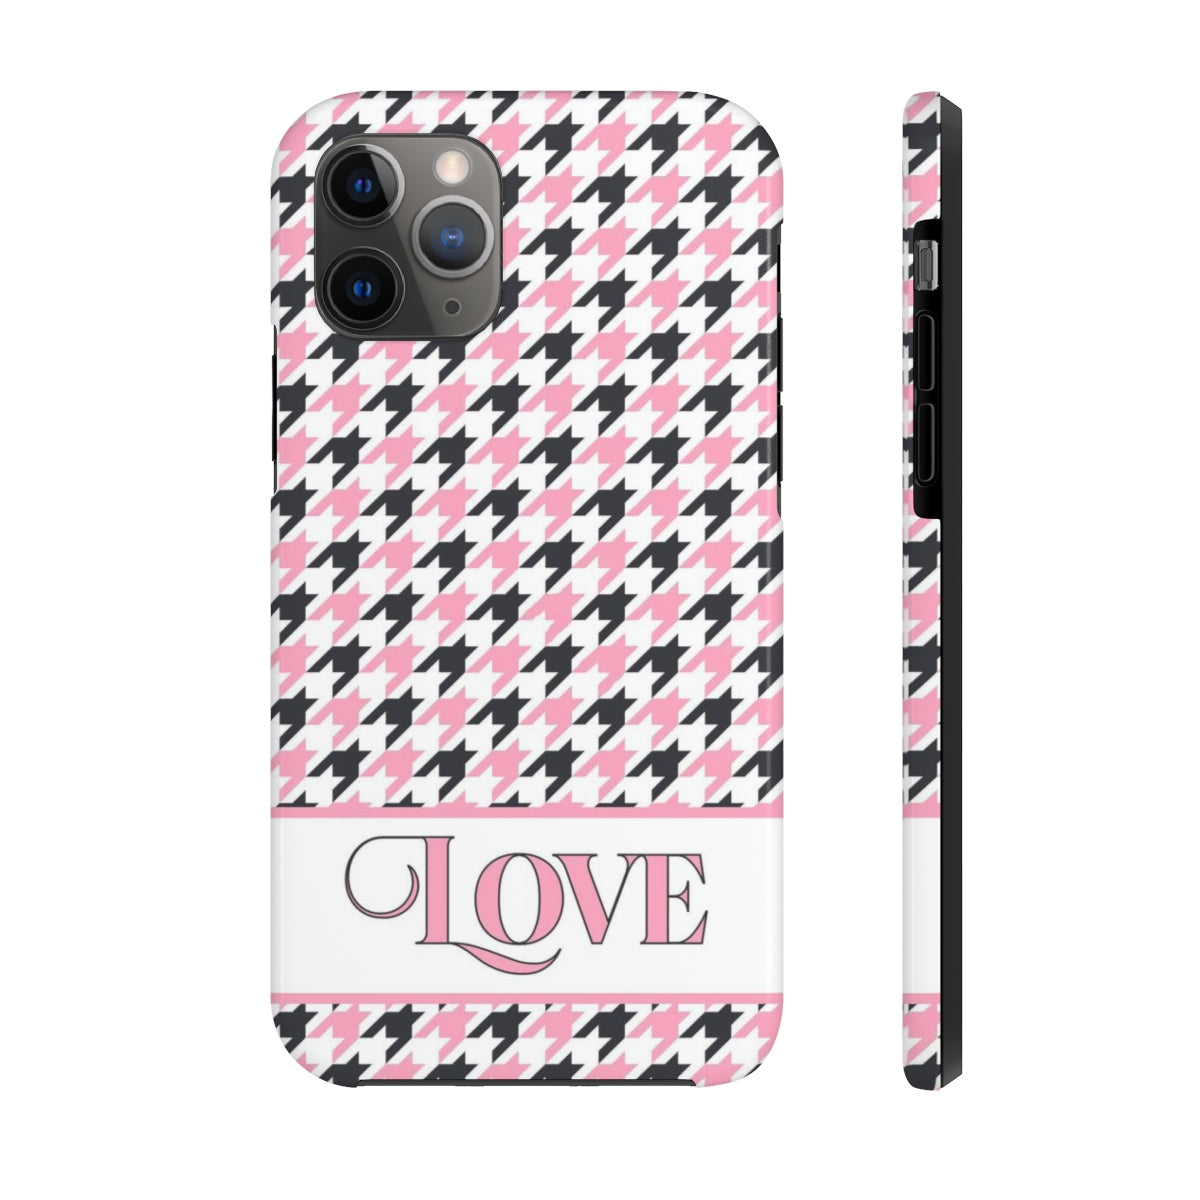 LOVE - Houndstooth Phone Case